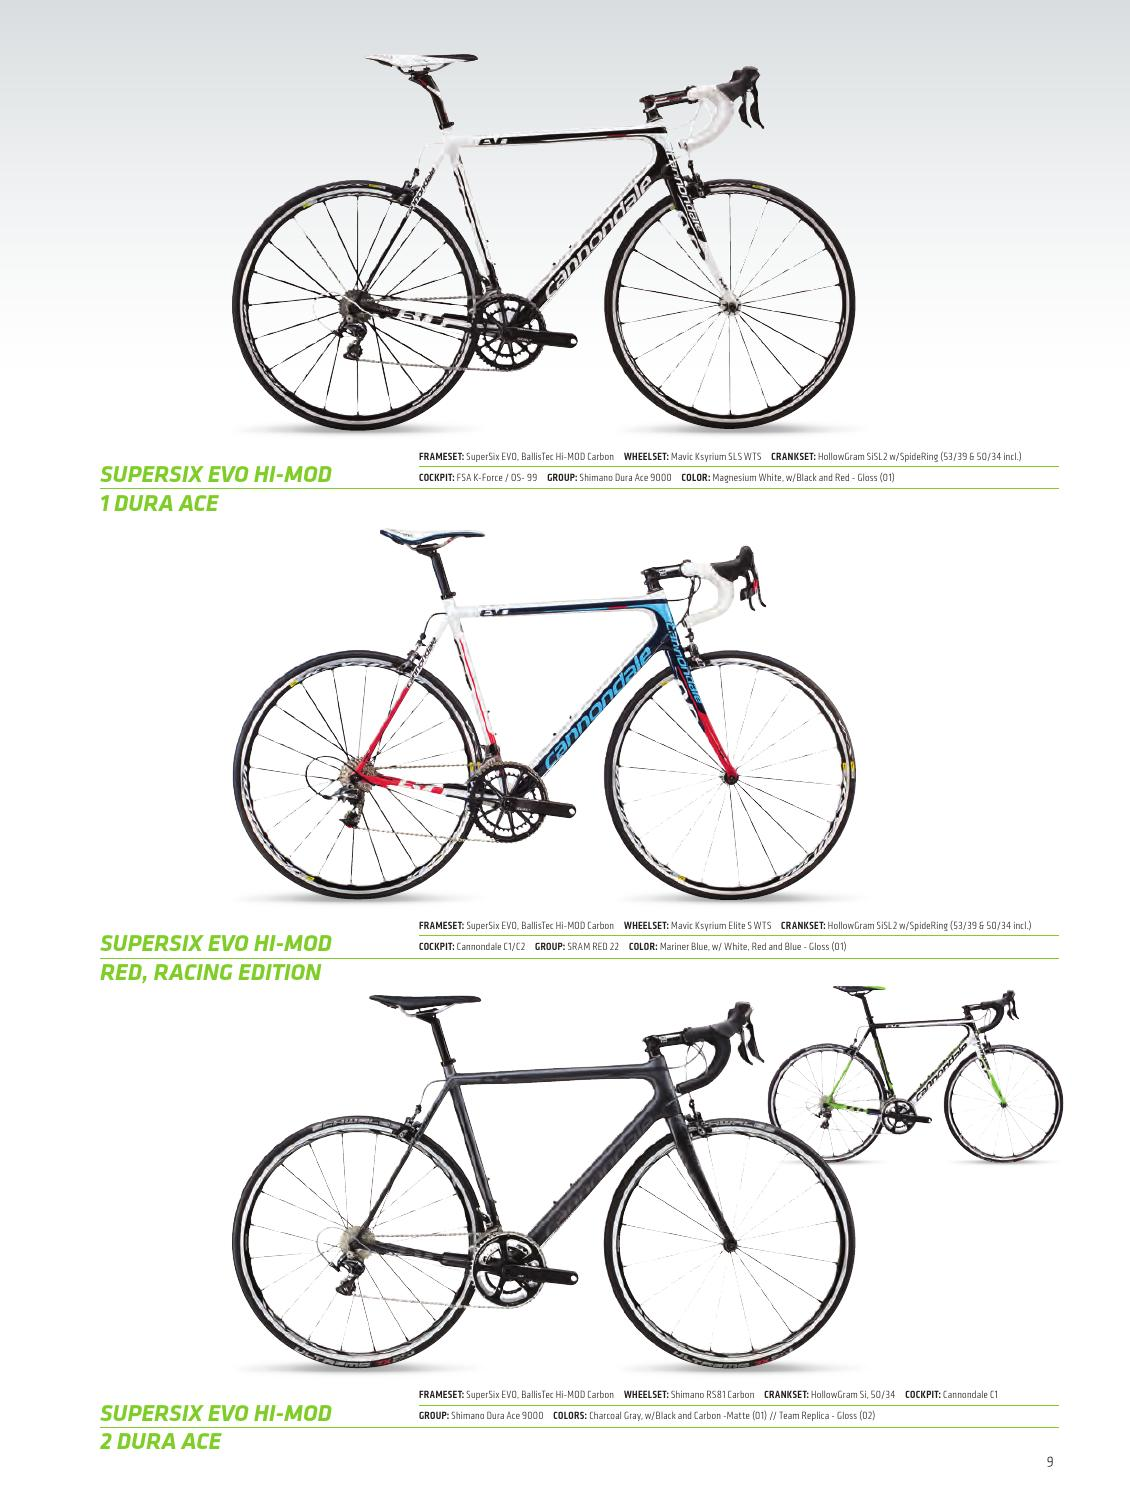 2014 Cannondale Bike Catalog by Cannondale_GLOBAL - issuu